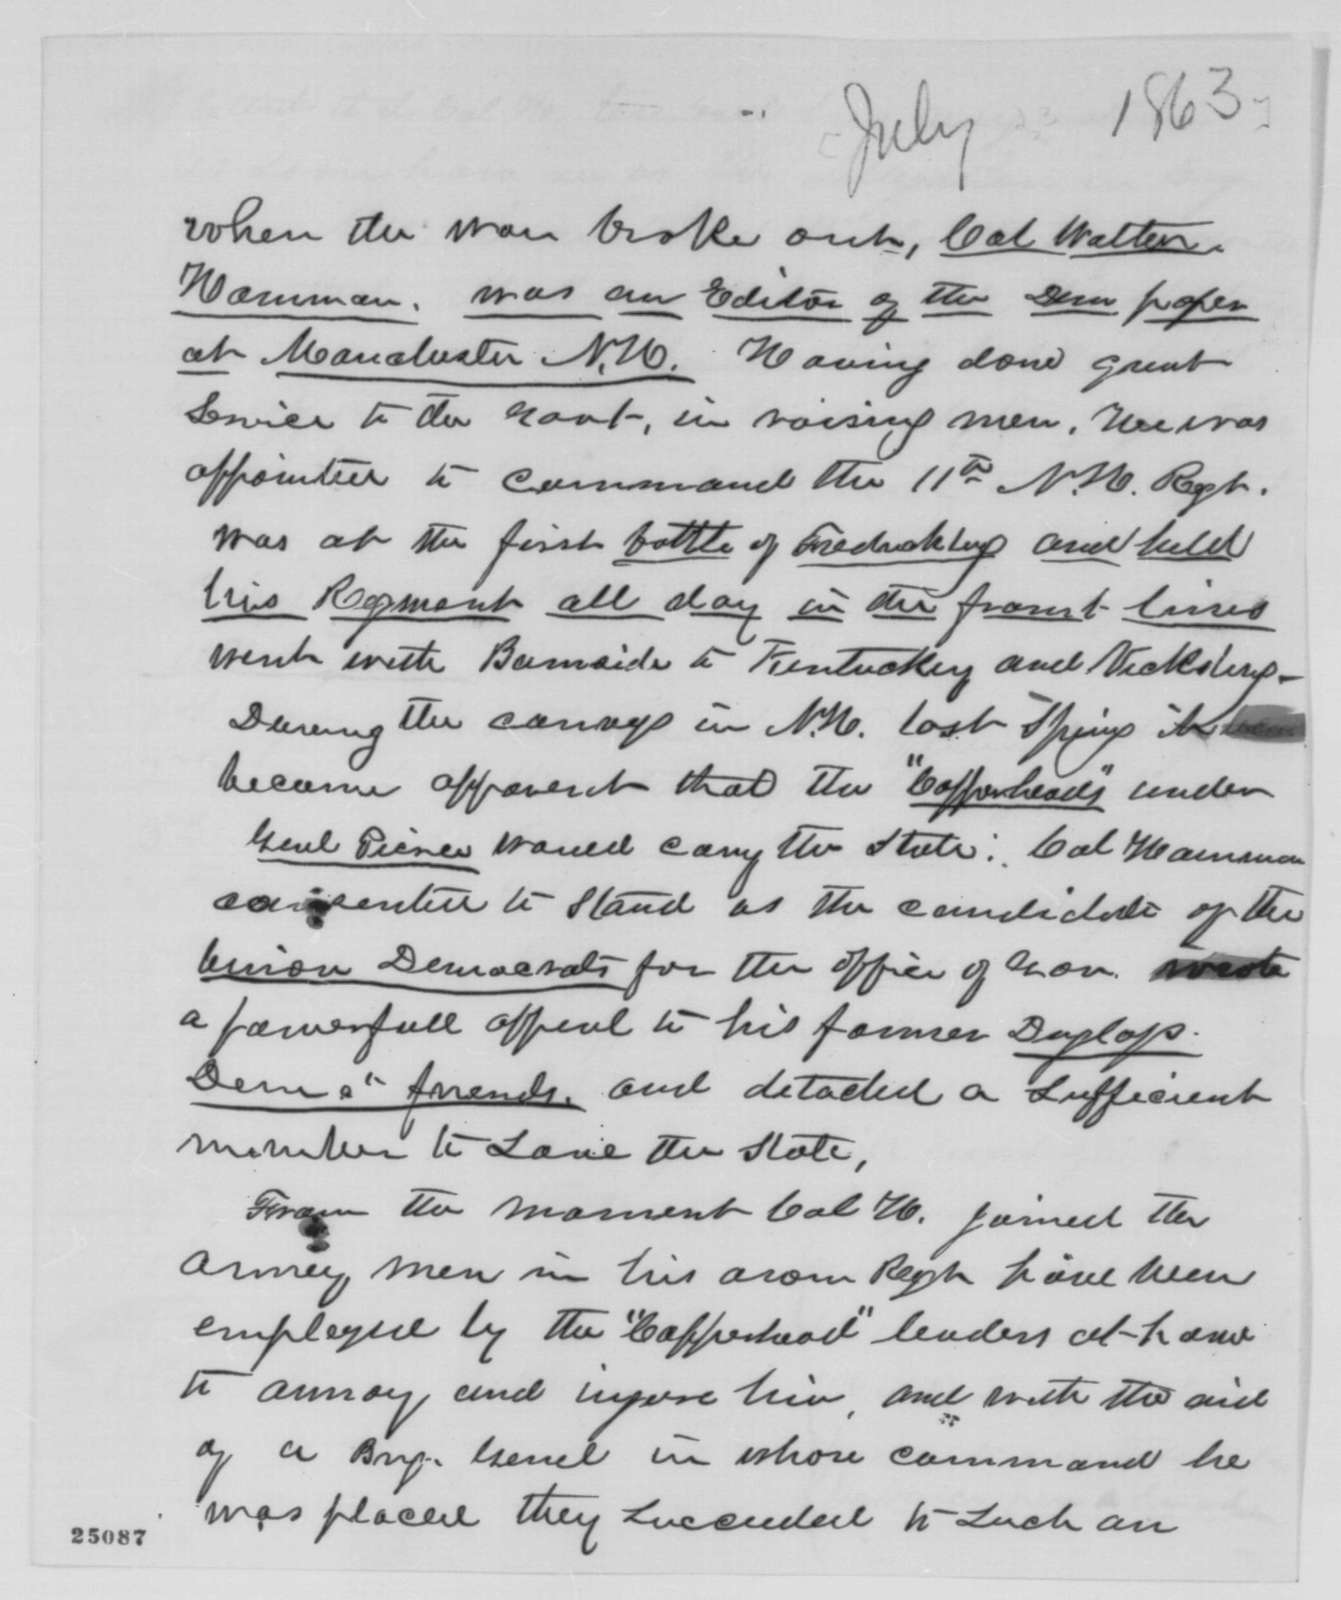 Nehemiah G. Ordway to Abraham Lincoln, [July 23, 1863]  (Statement on behalf of Walter Harriman)